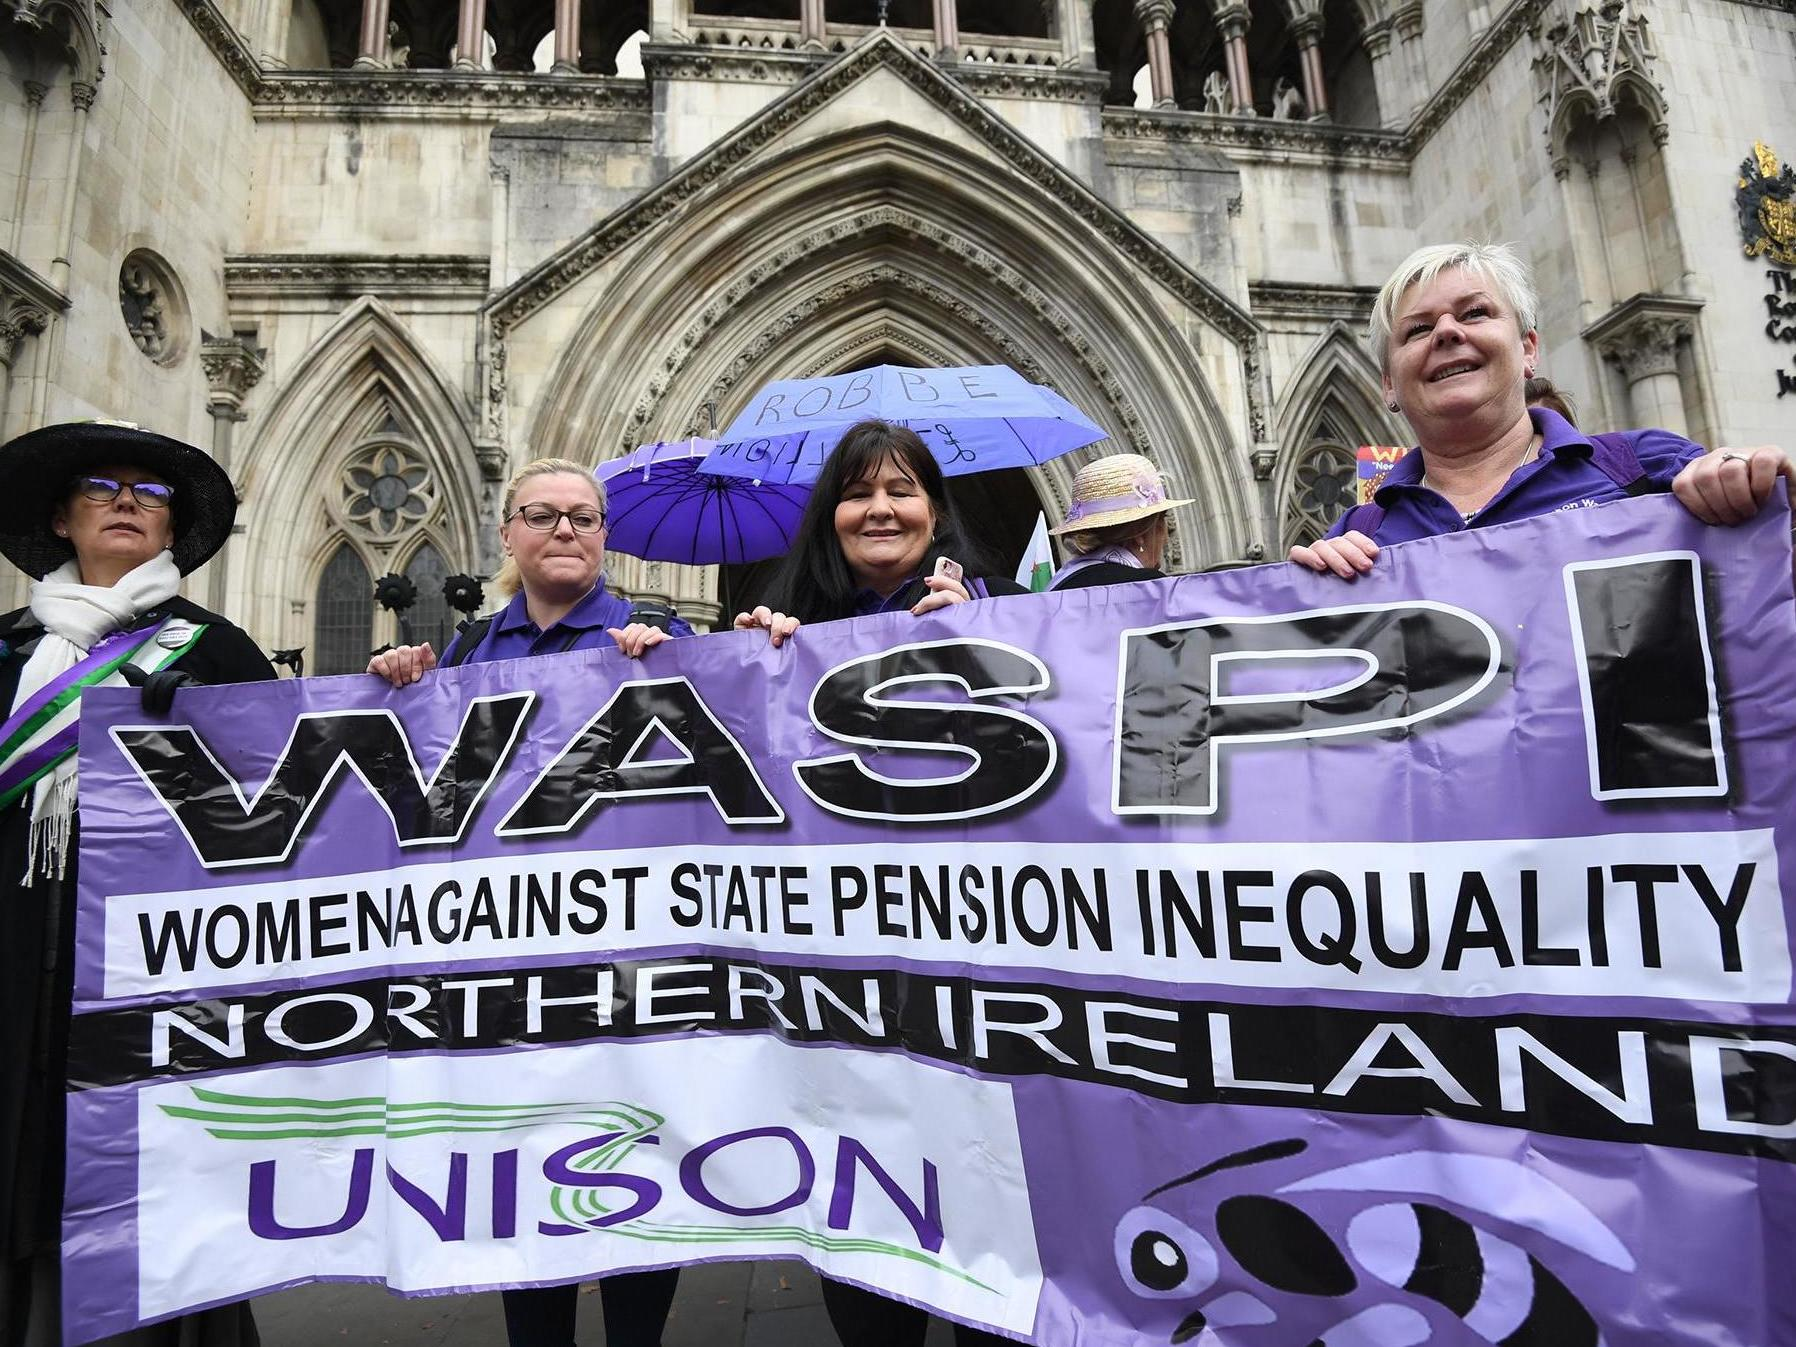 One year on, and nothing has changed for the women who were shortchanged in their pensions